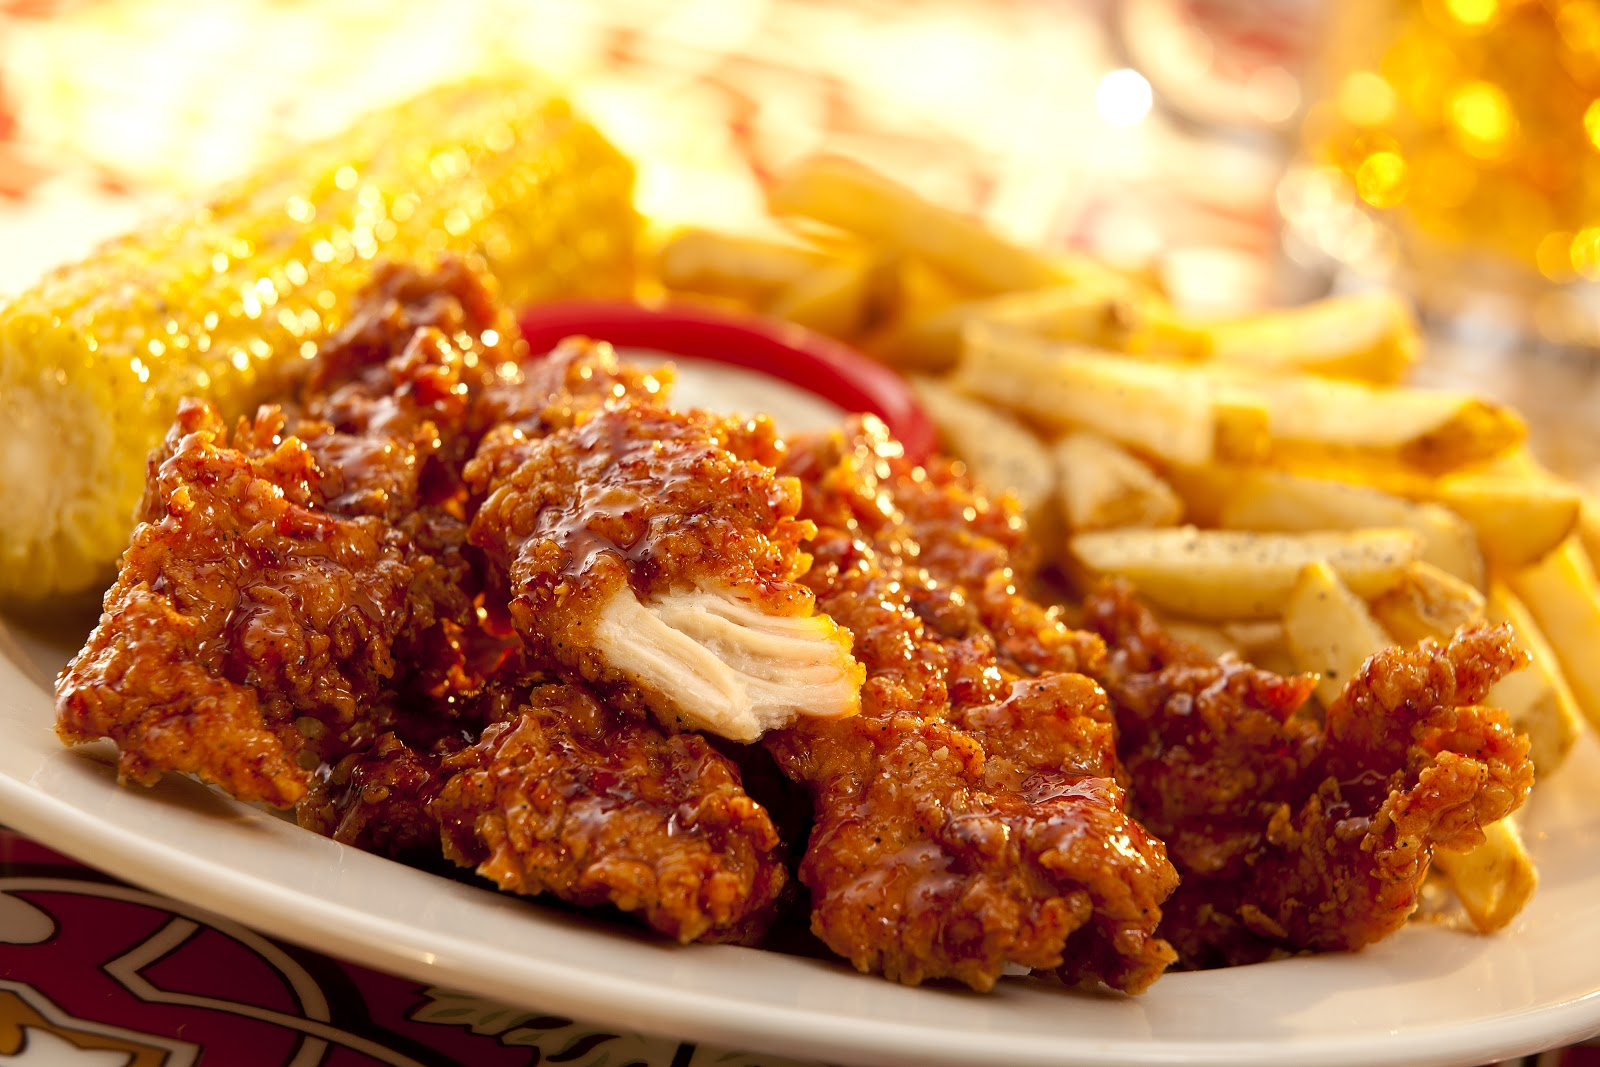 Honey Chipotle Chicken Crispers at Chili's.